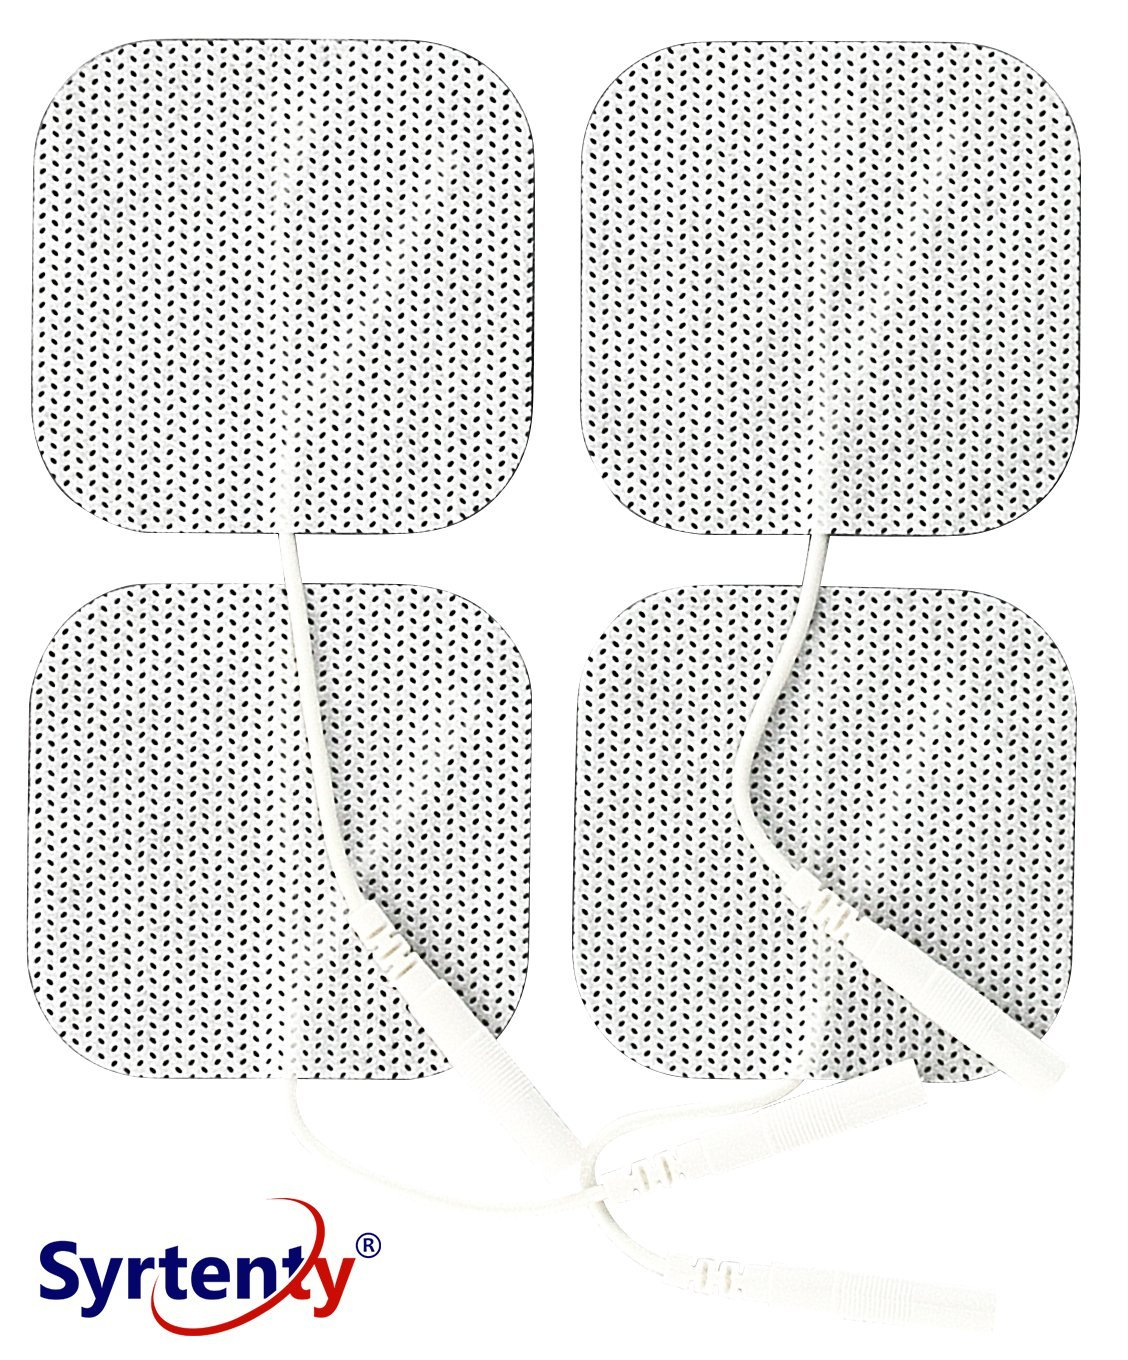 Syrtenty TENS Unit Electrodes Pads 2×2 Replacement Pads Electrode Patches for Electrotherapy